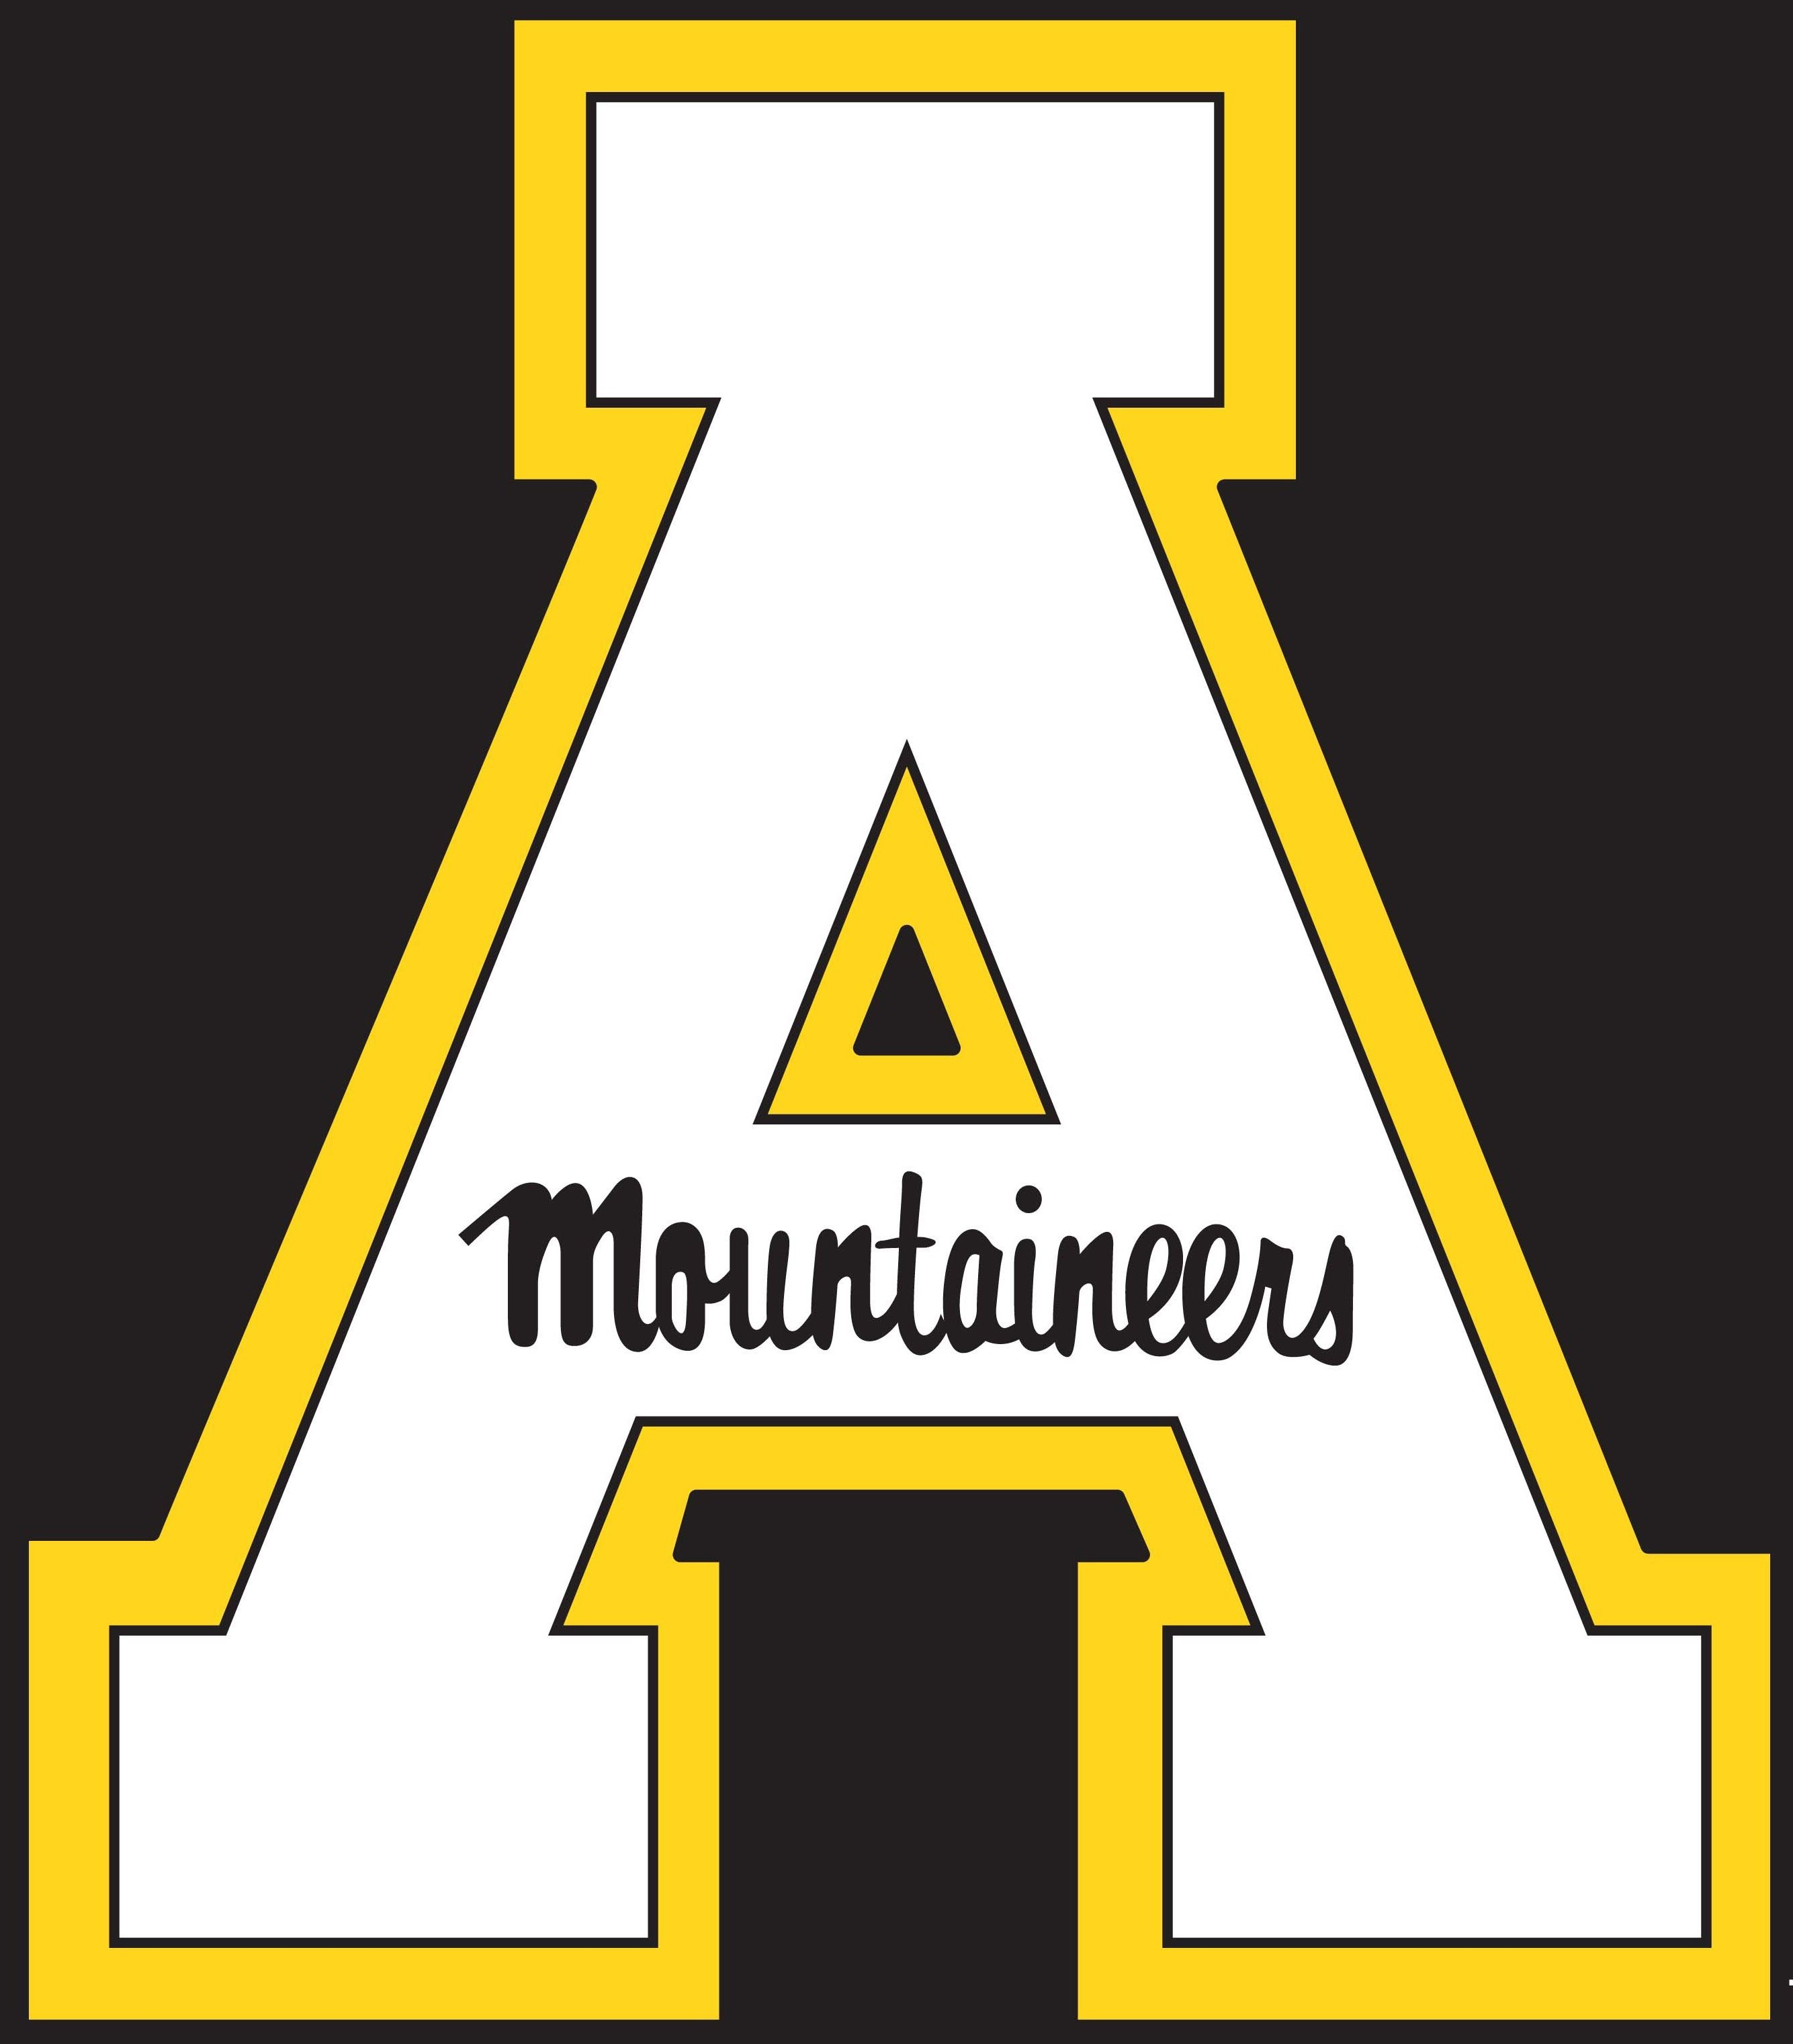 Appalachian state A high resolution cropped at 2669 x 3043